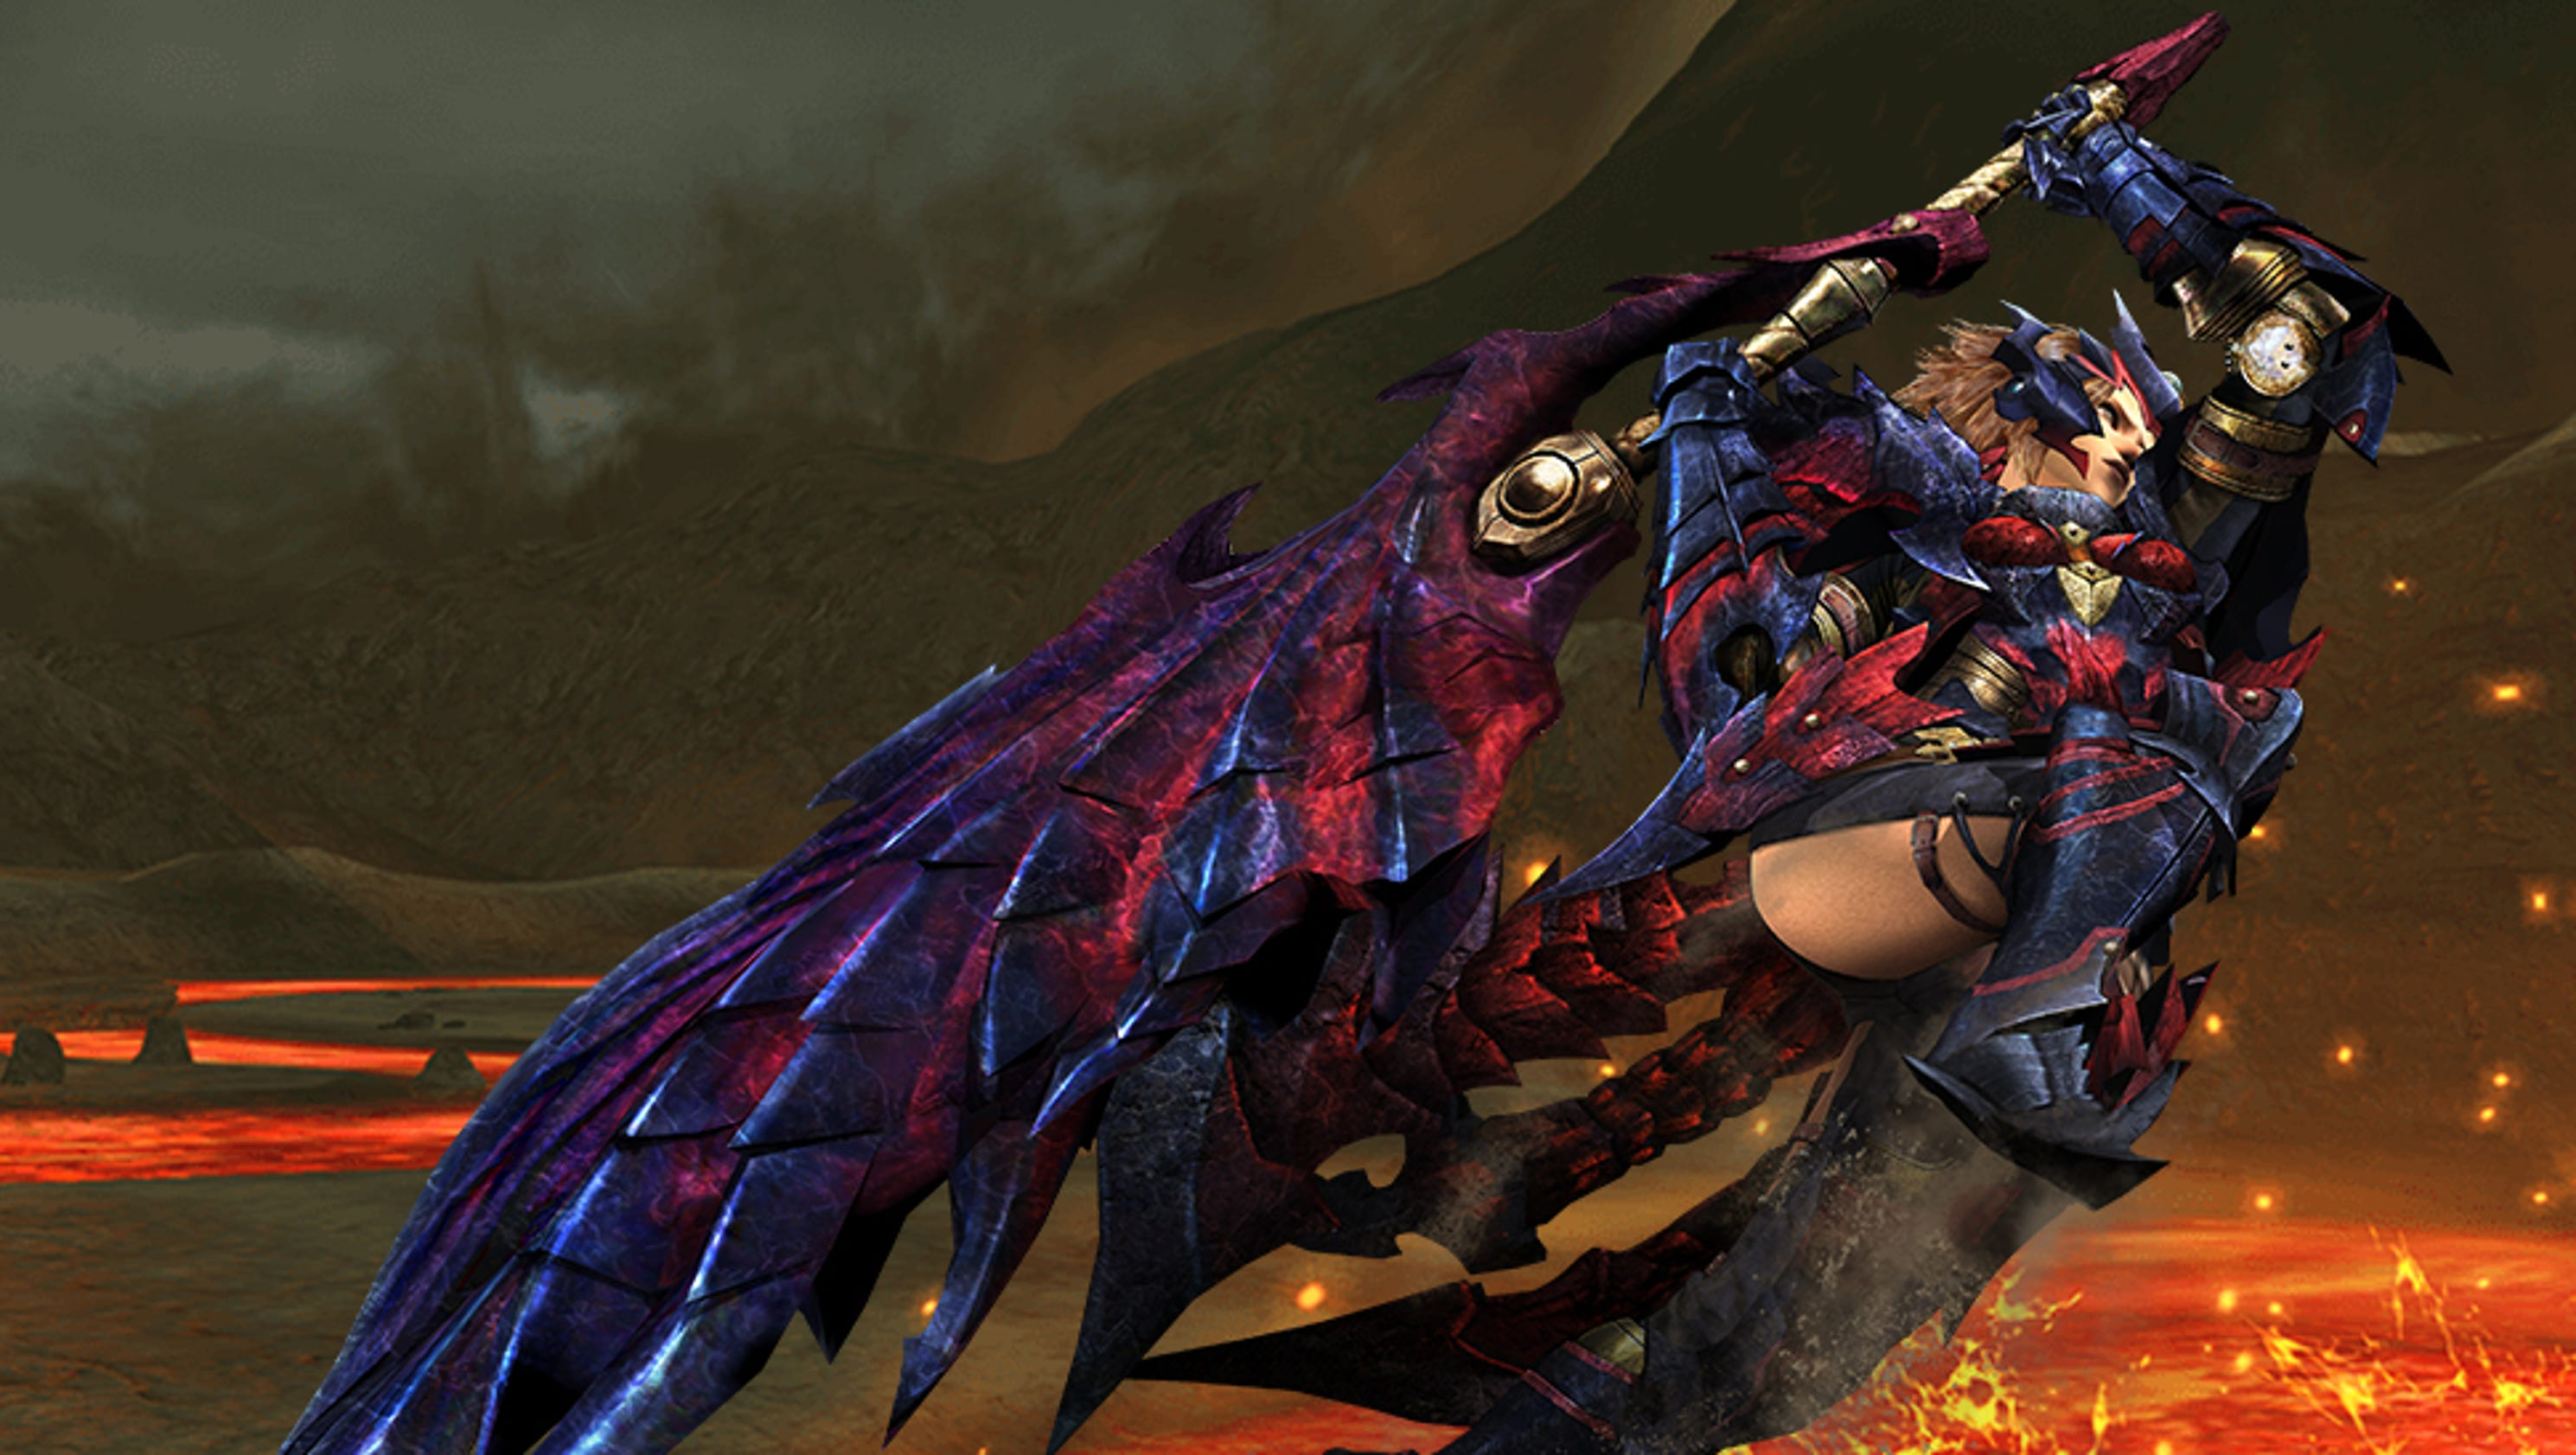 mhx 14 monster hunter generations armor sets to try